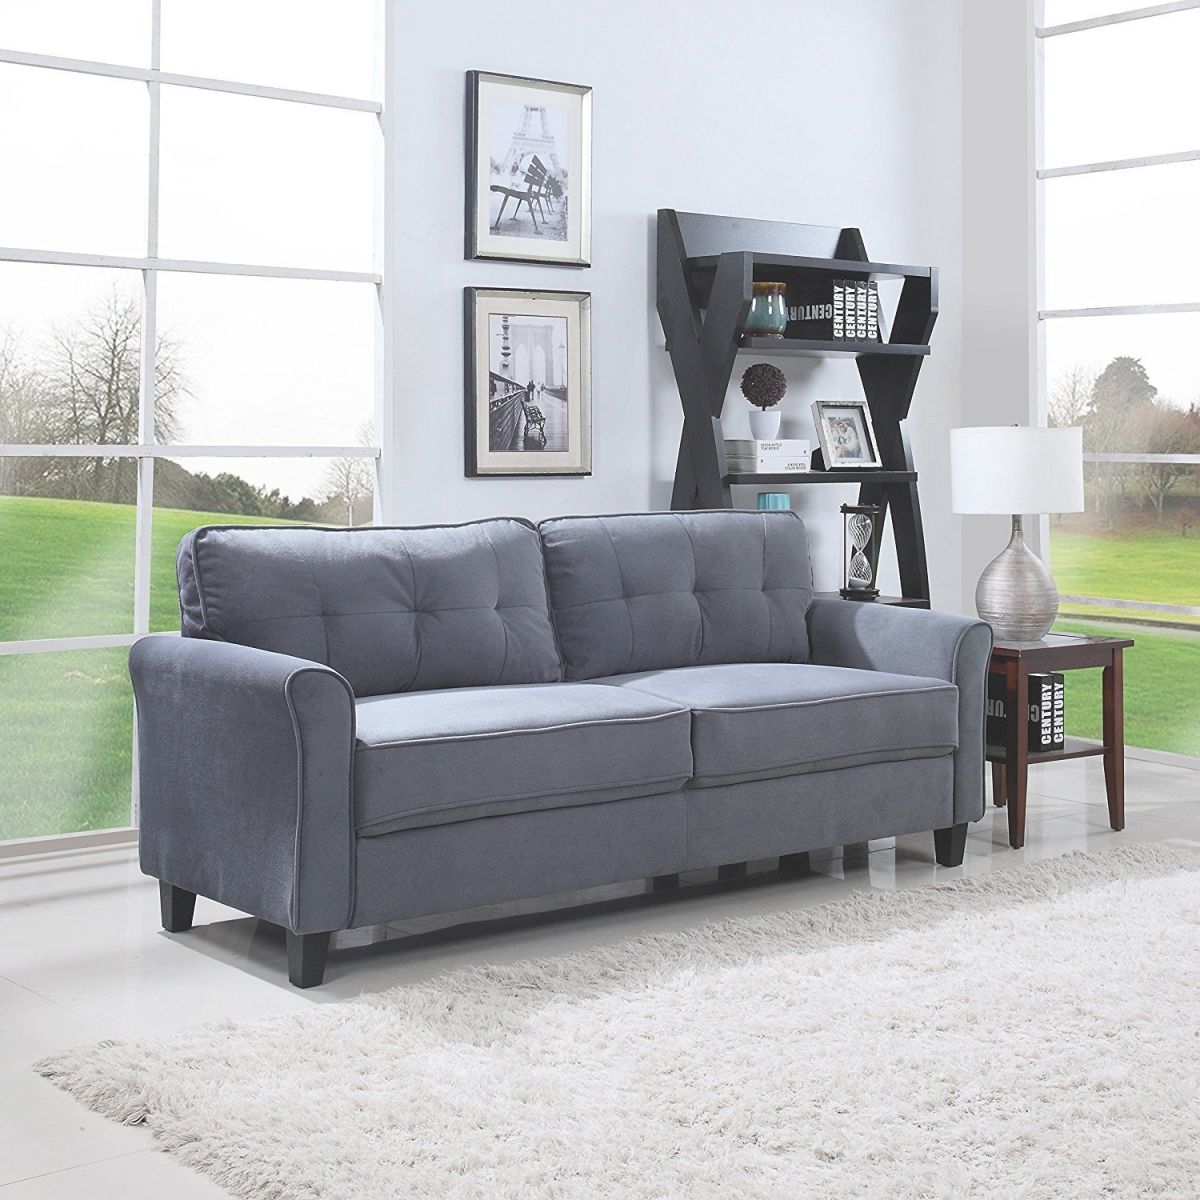 Details About Classic Ultra Comfortable Brush Microfiber Fabric Living Room Sofa (Dark Grey) with Living Room Furnitures